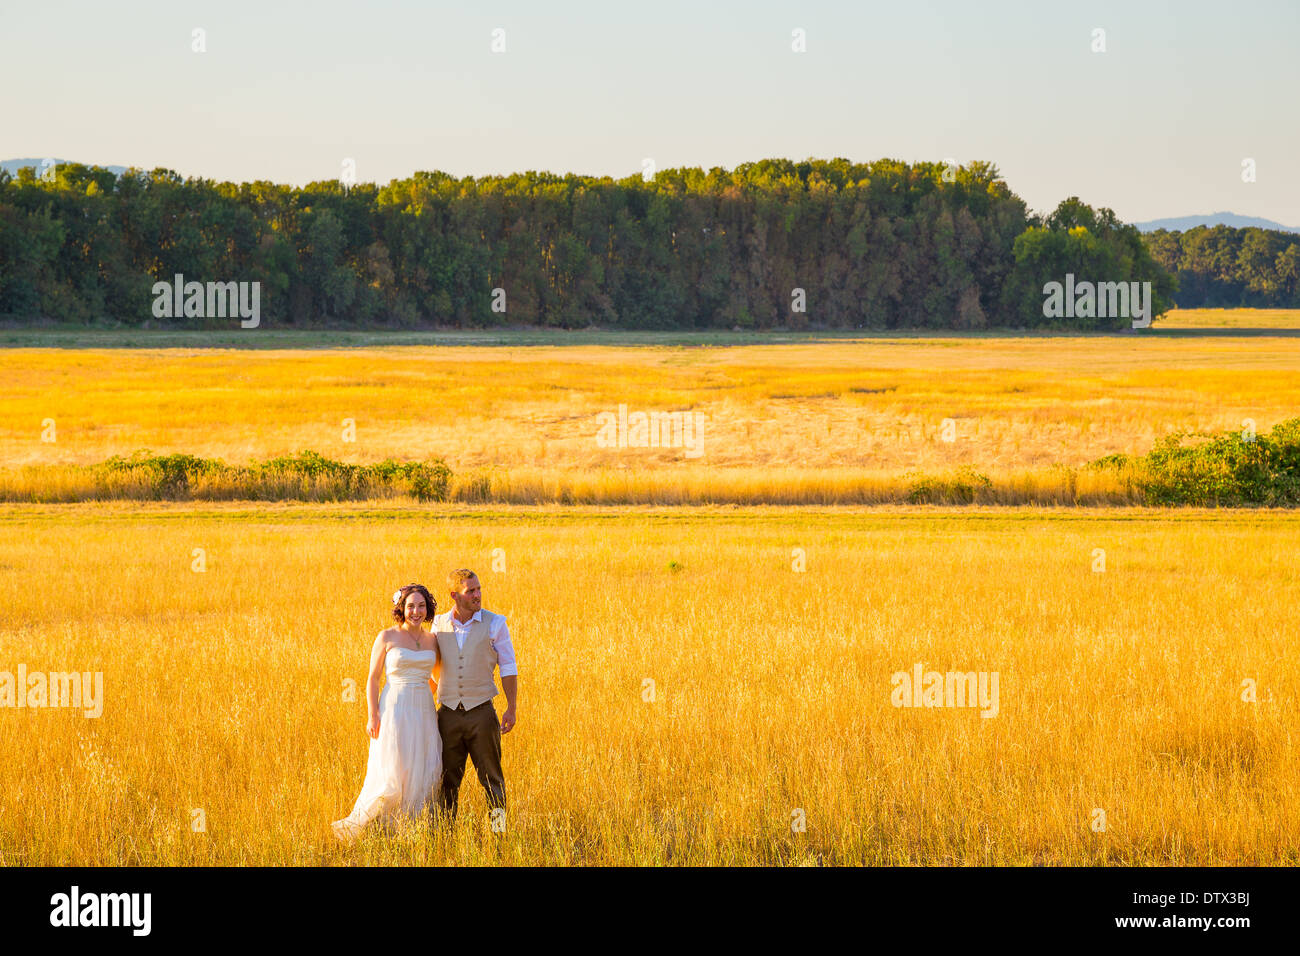 Wedding couple shares a romantic moment in a field or meadow at sunset on their wedding day. Stock Photo